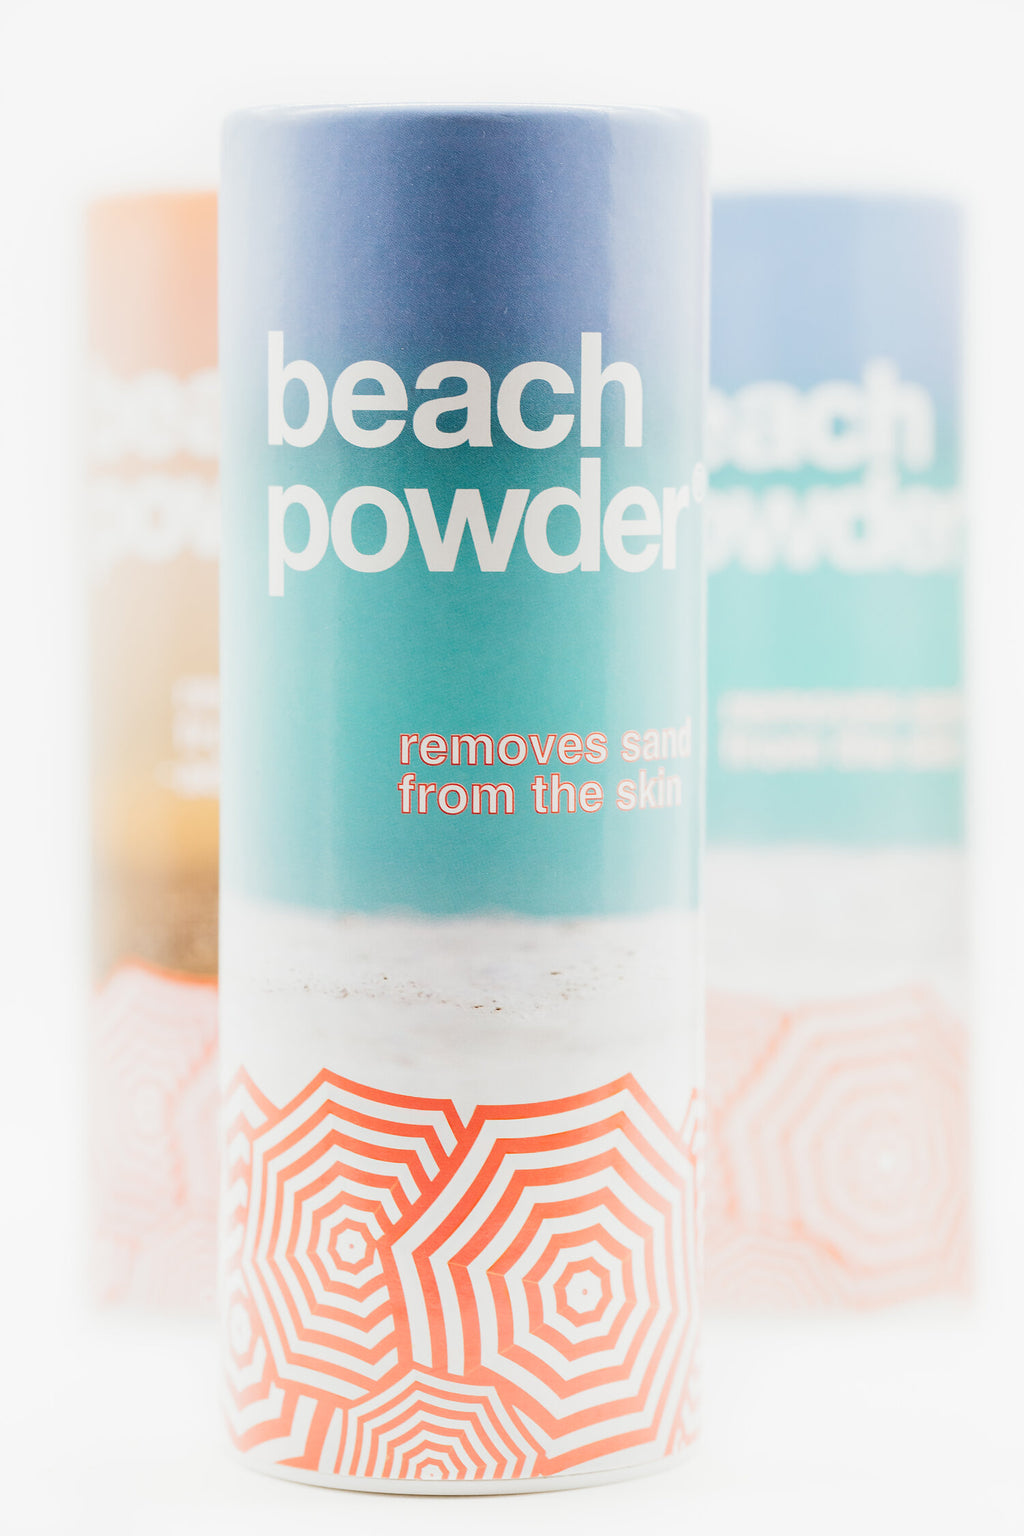 beach powder sand removing magical powder